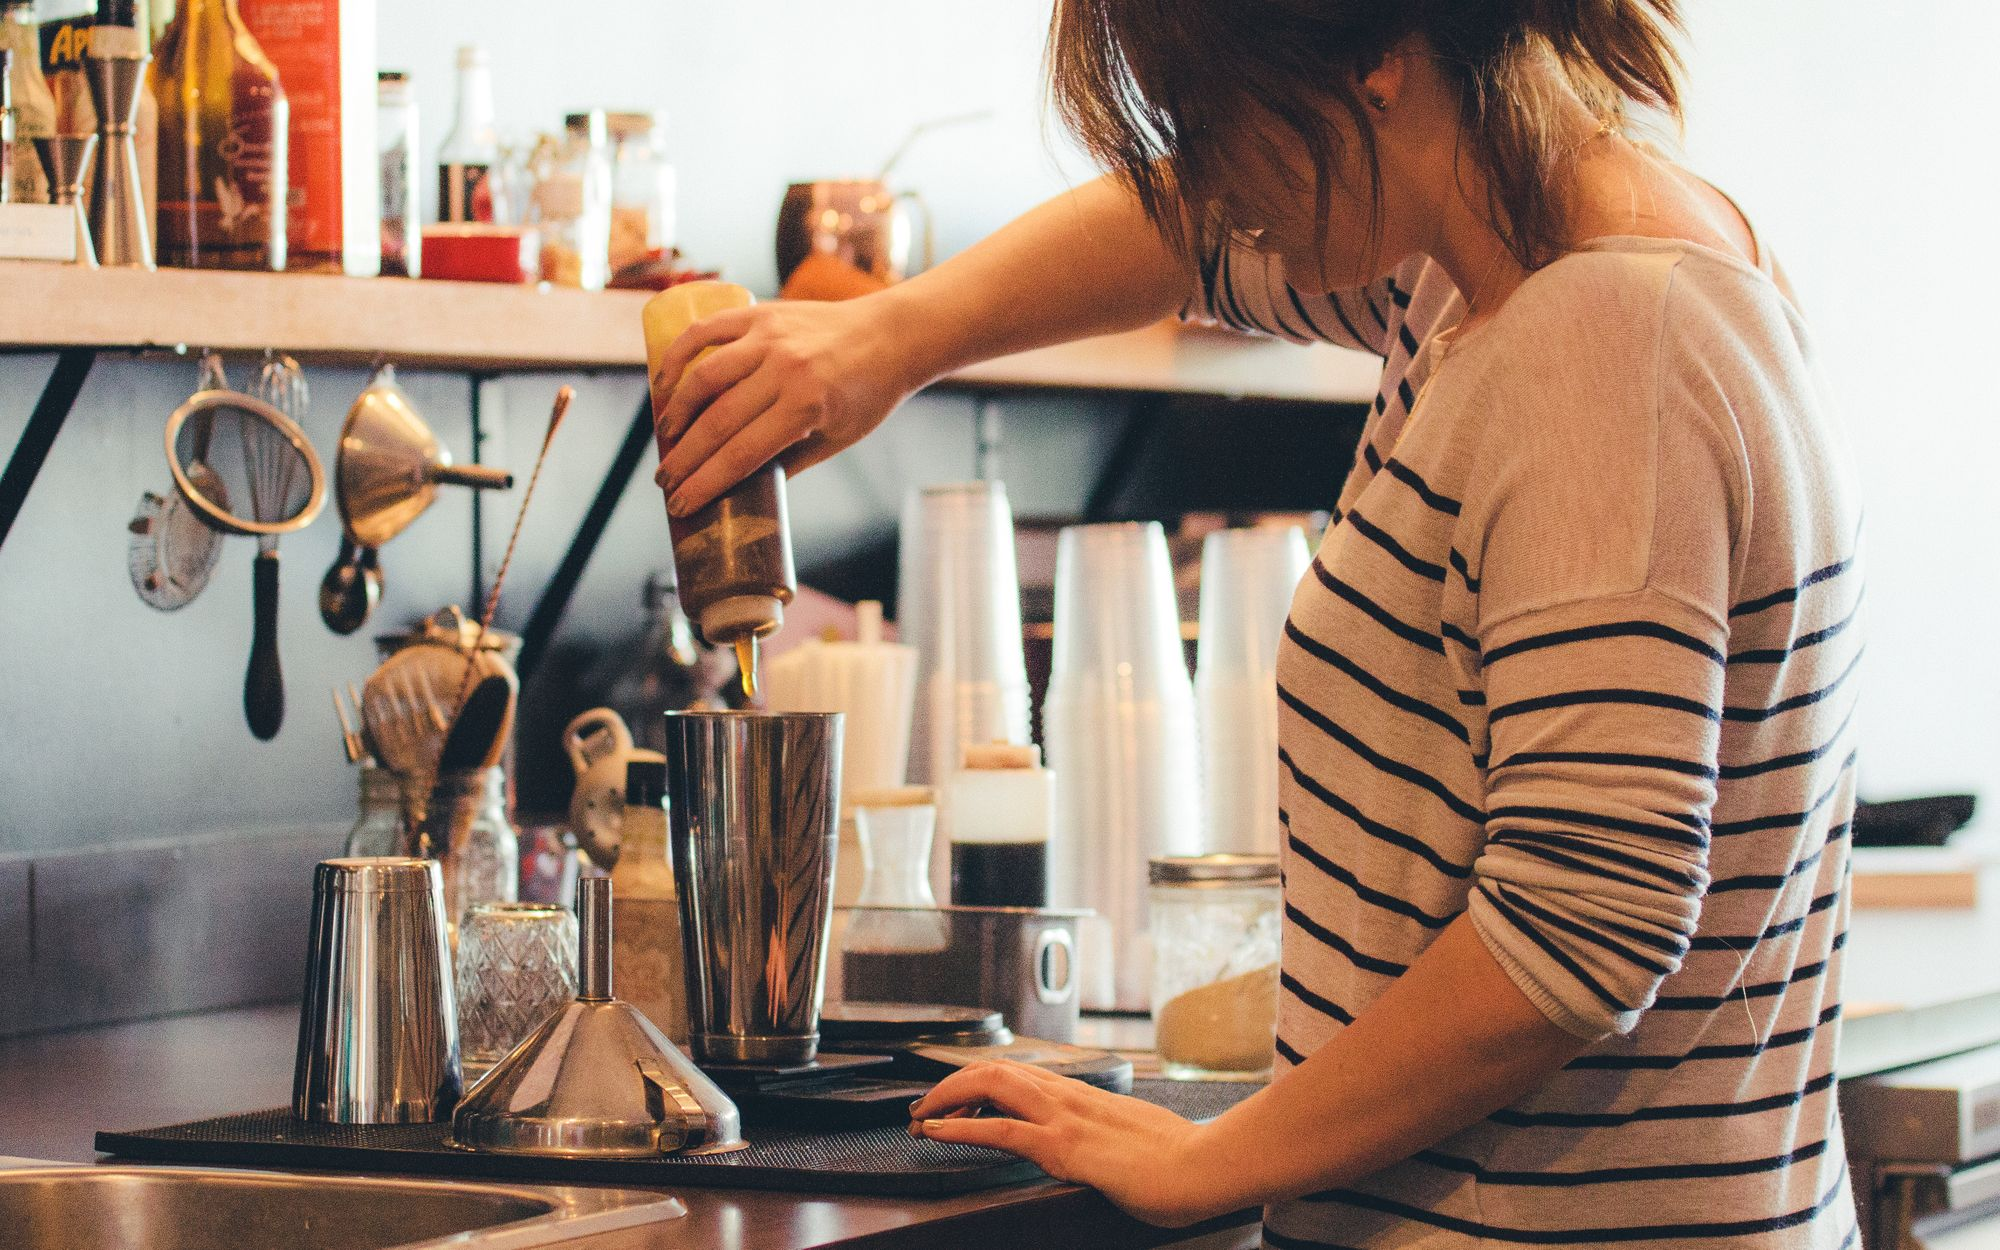 barista pouring syrup from squeeze bottle